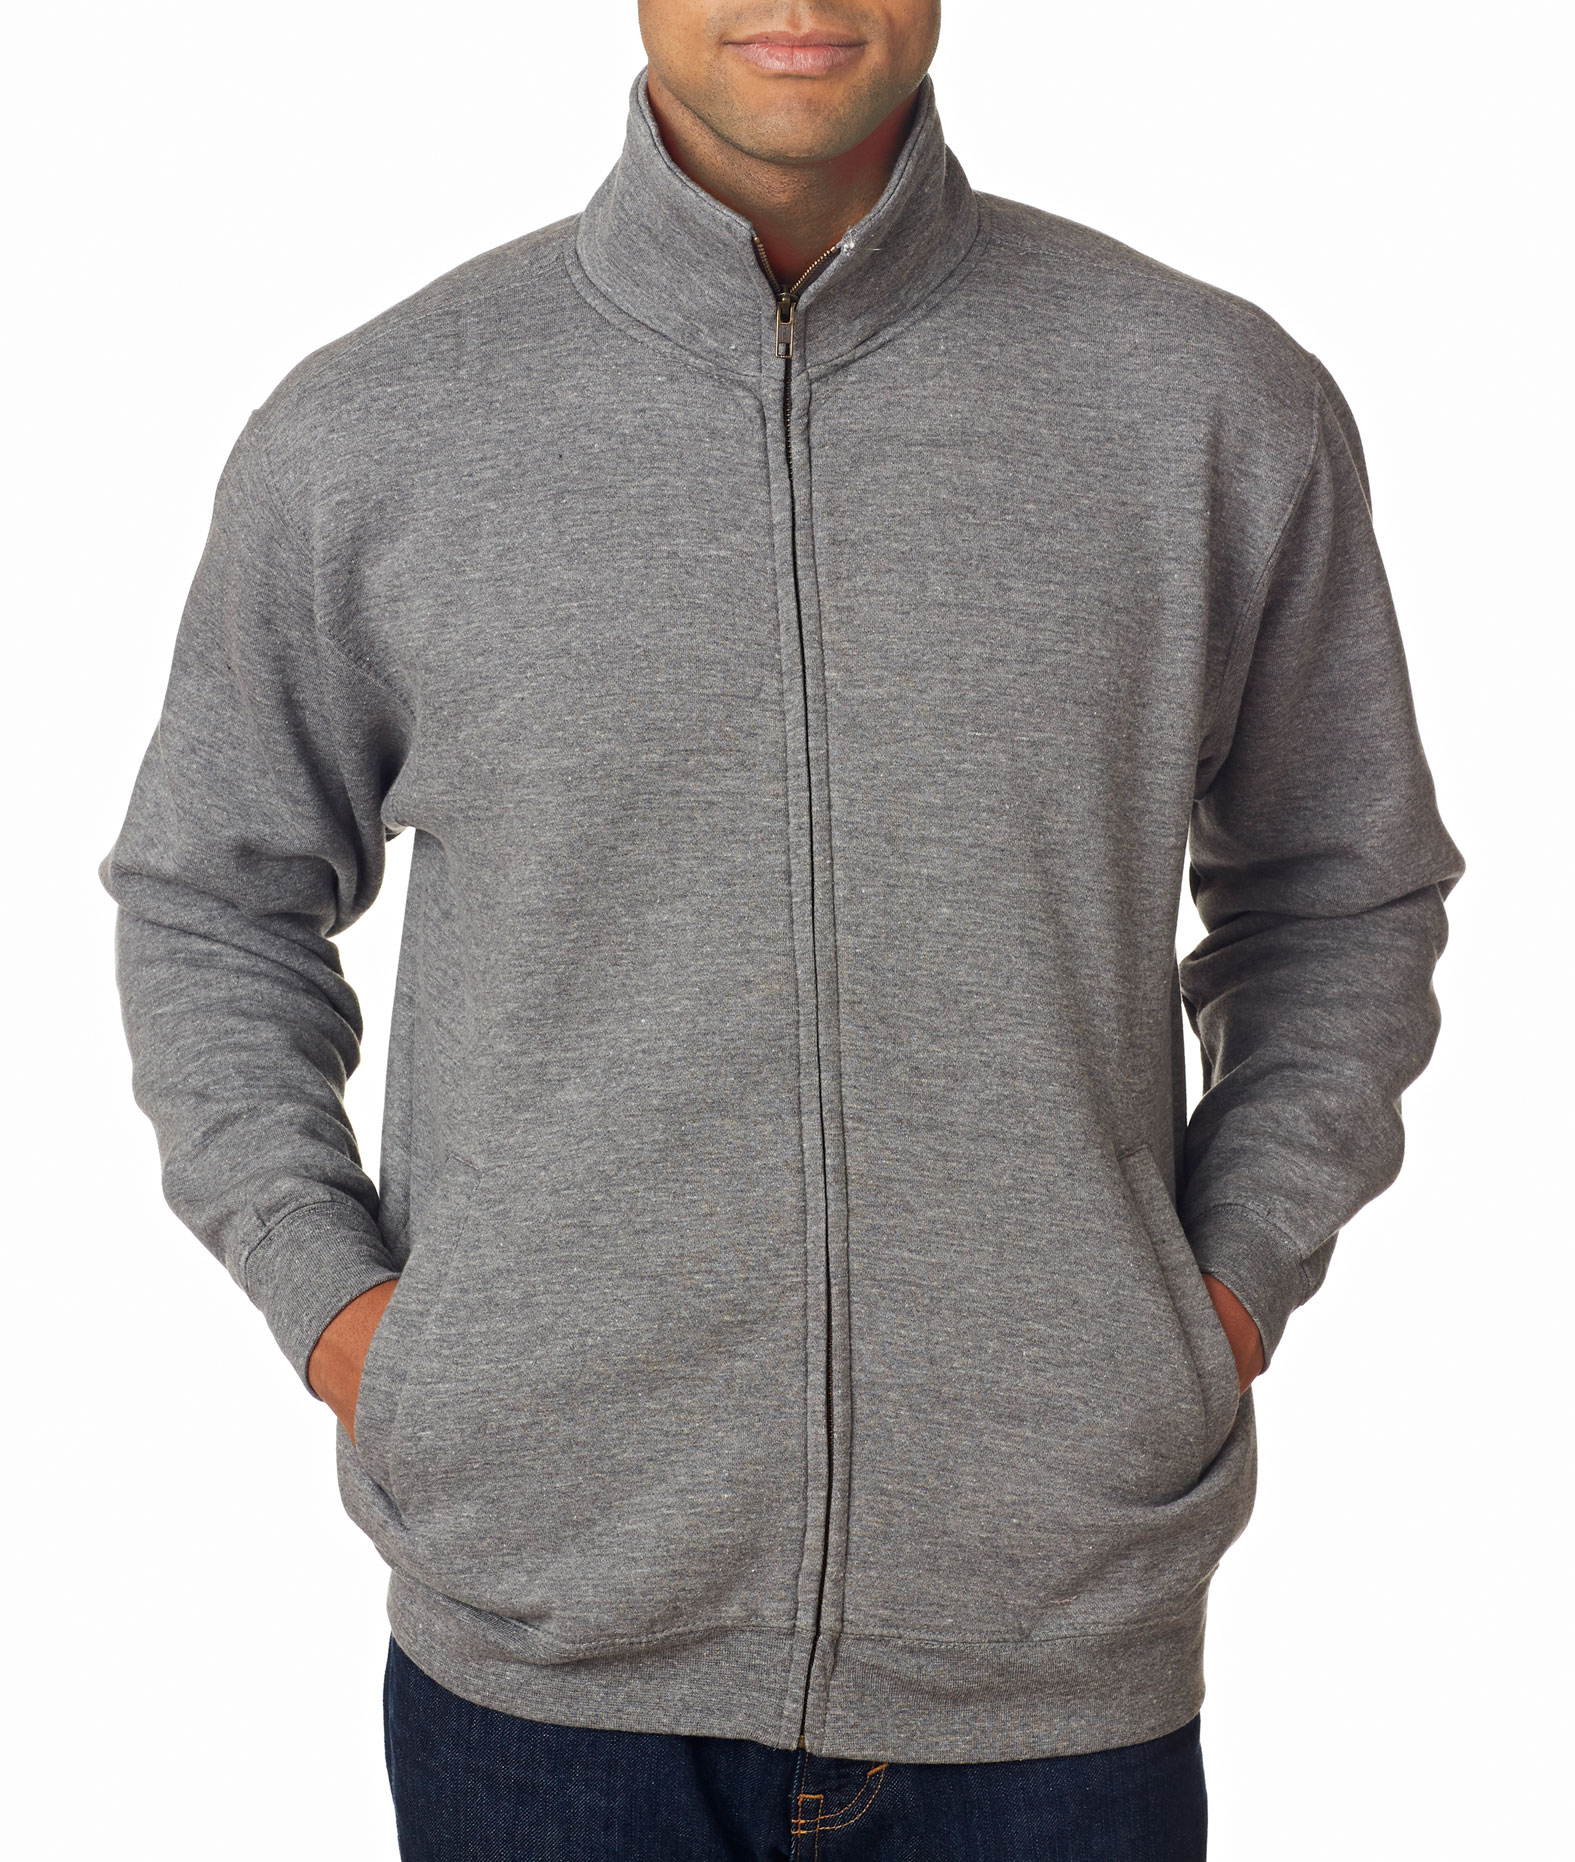 Weatherproof Adult Cross Weave� Warm-Up Blend Sweatshirt